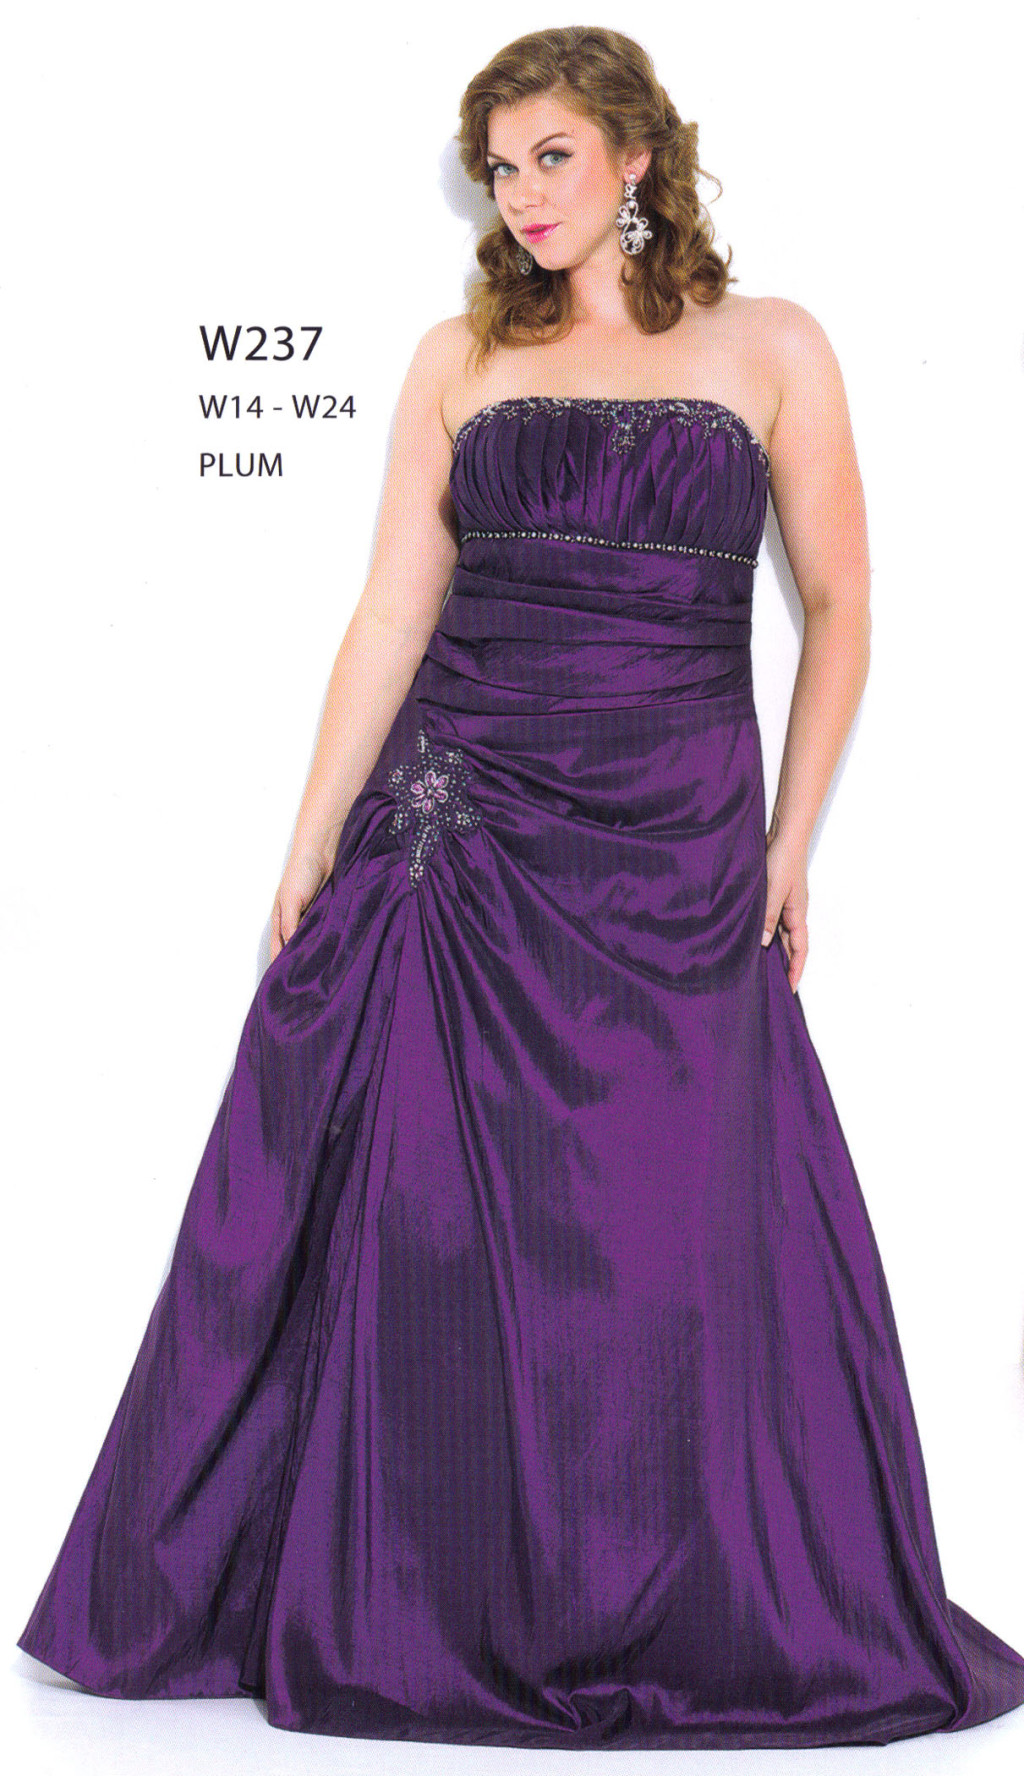 PLUM COLOR BRIDESMAIDS HOME ING LONG PROM FORMAL DRESS